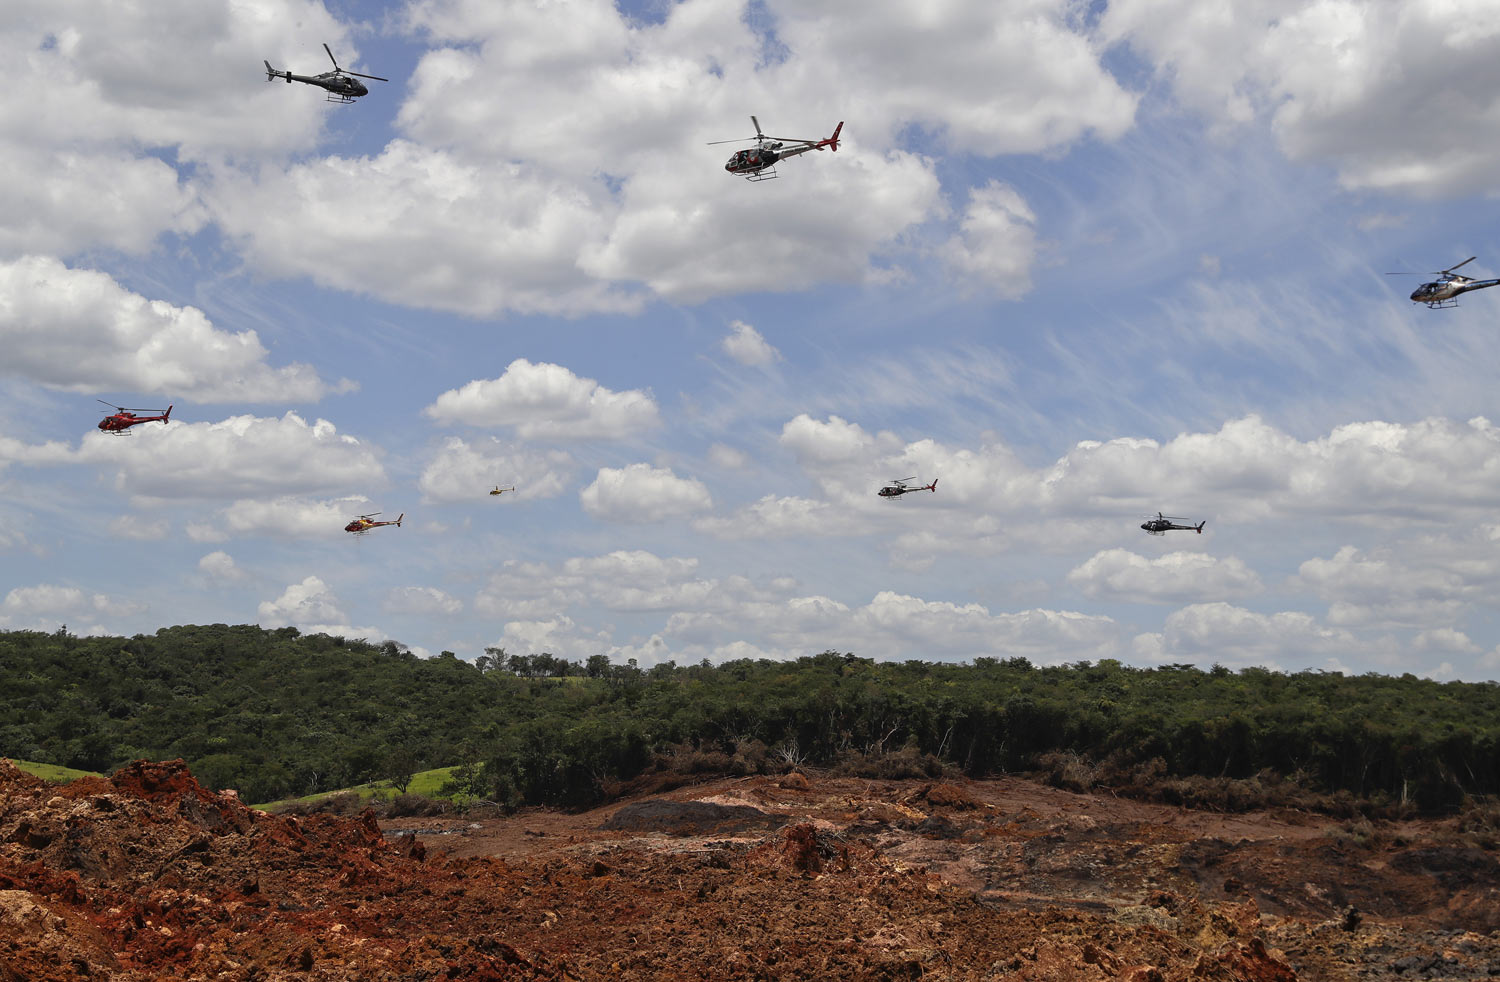 Helicopters hover over an iron ore mining complex to release thousands of flower petals paying homage to the 110 victims killed and 238 who are still missing after a mining dam collapsed there a week earlier, in Brumadinho, Brazil, Friday, Feb. 1, 2019. (AP Photo/Andre Penner)